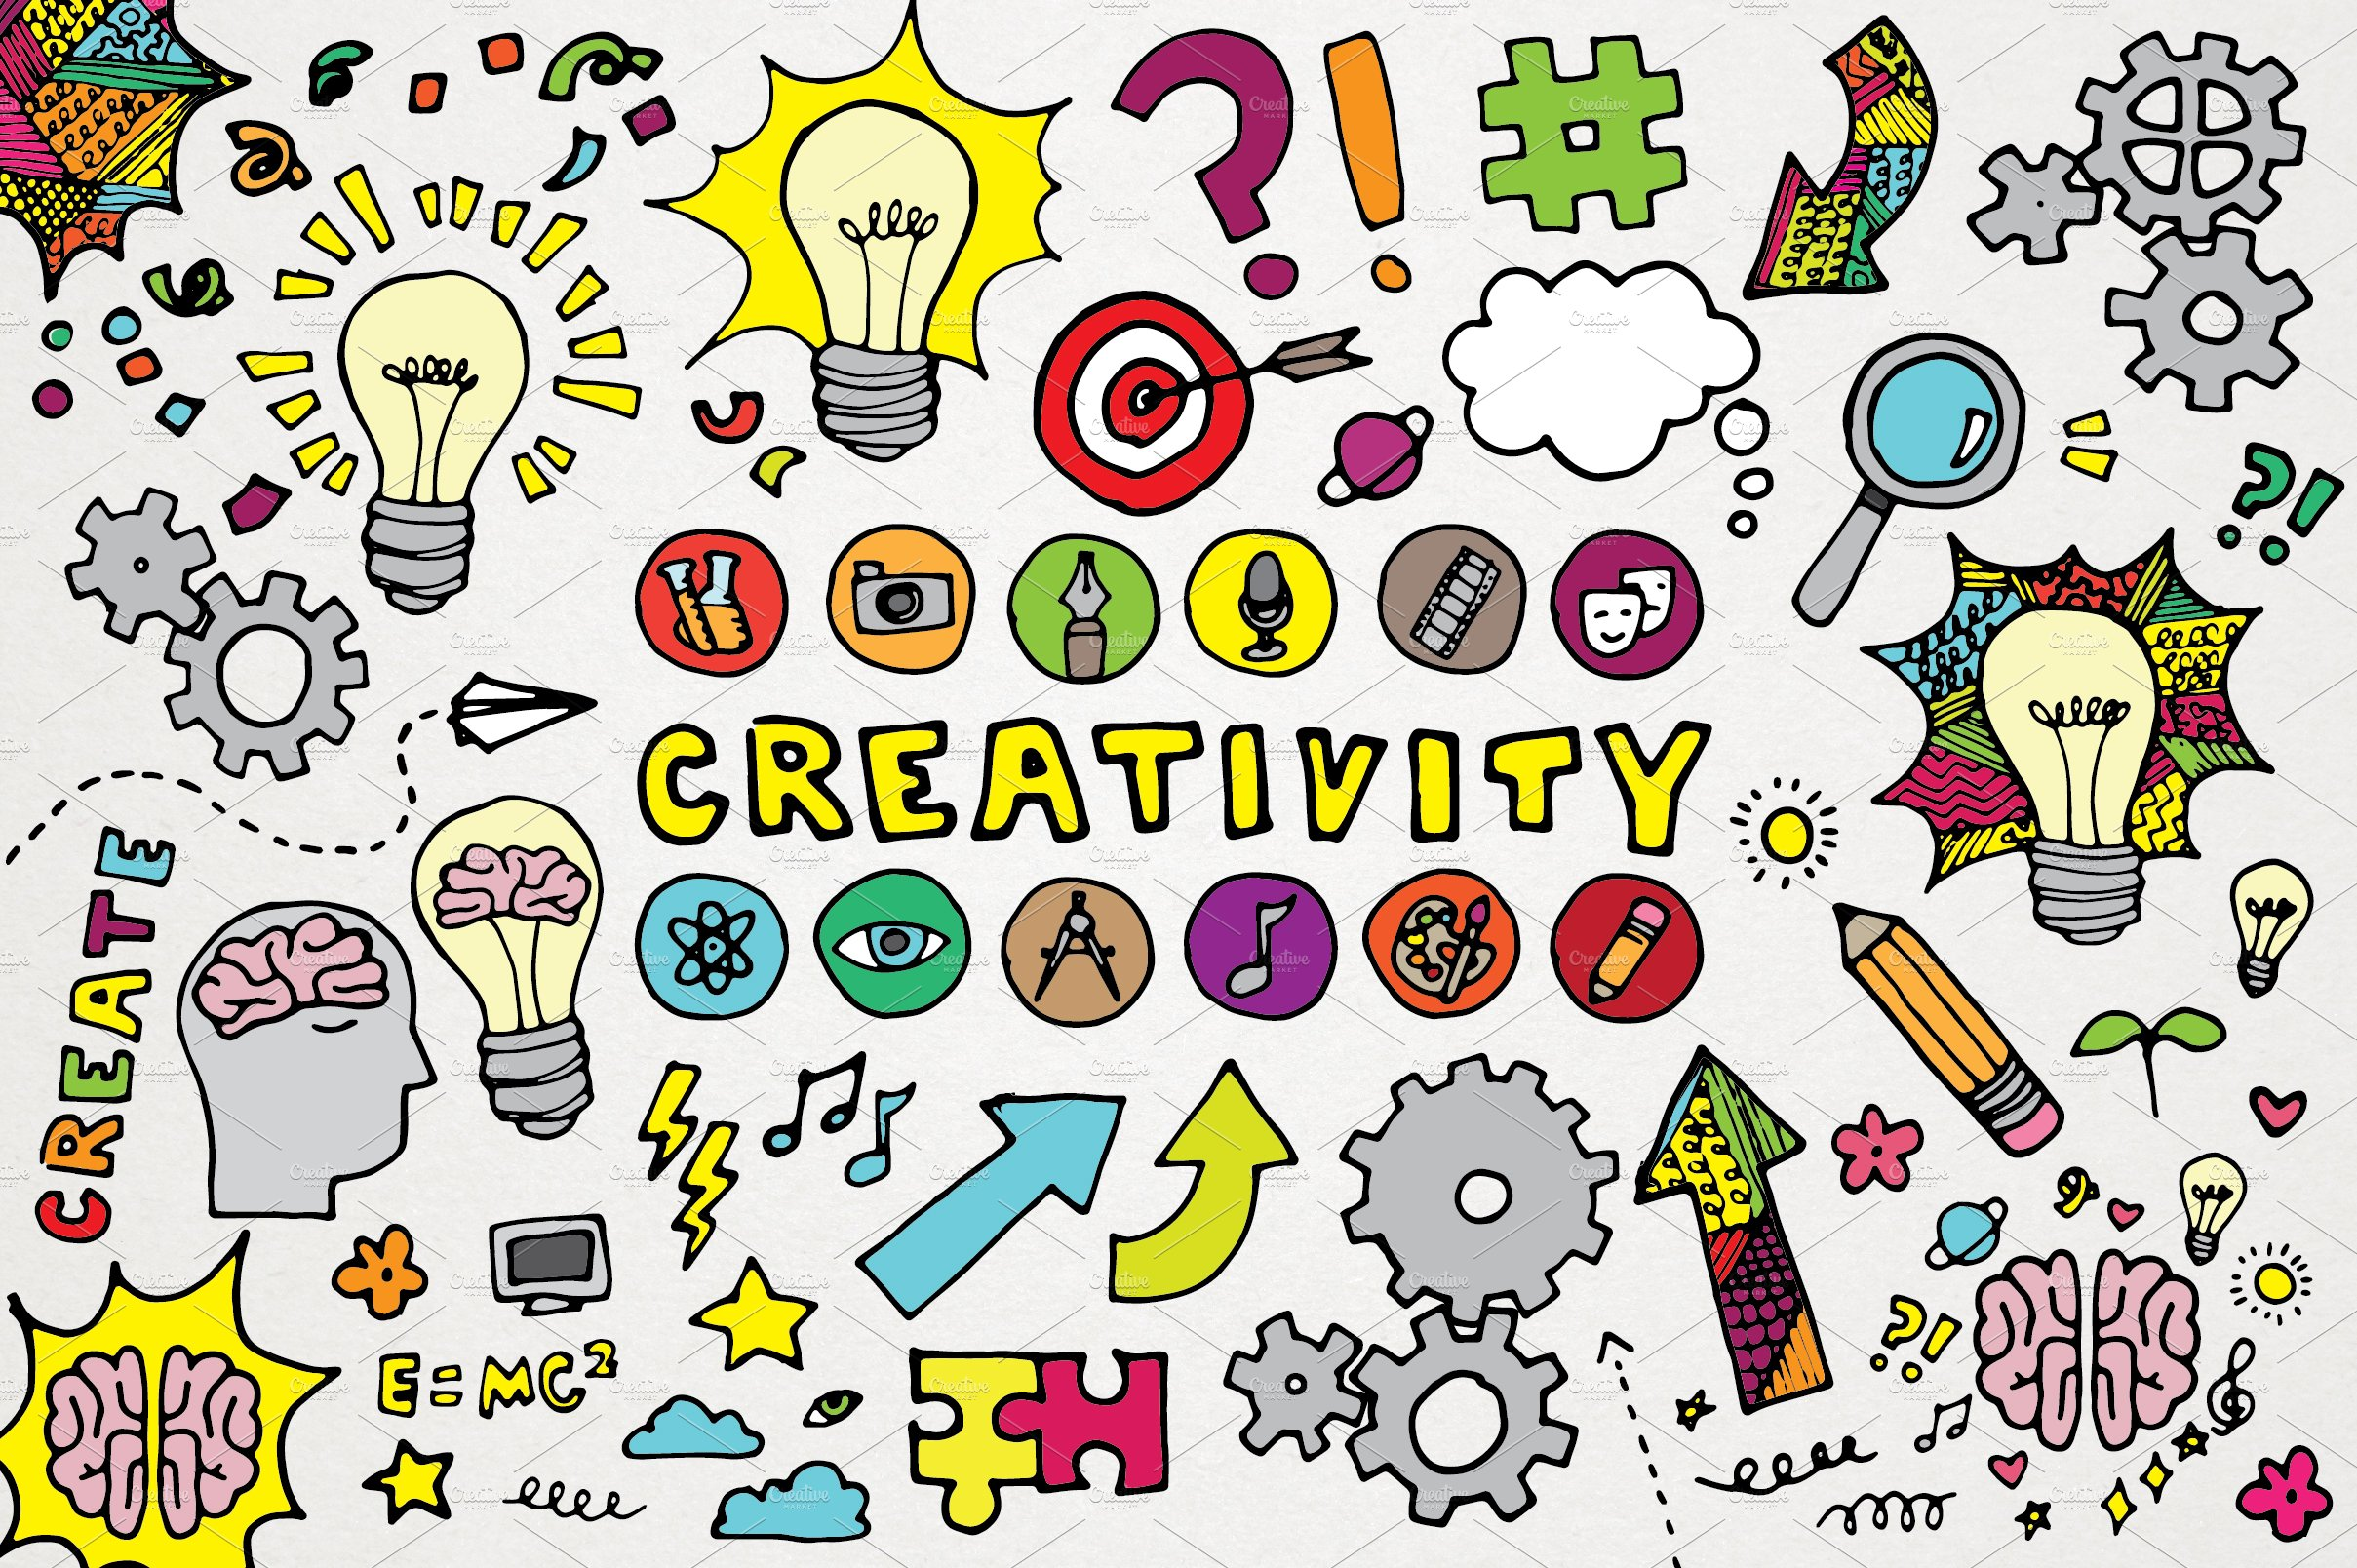 Creativity Painting Images